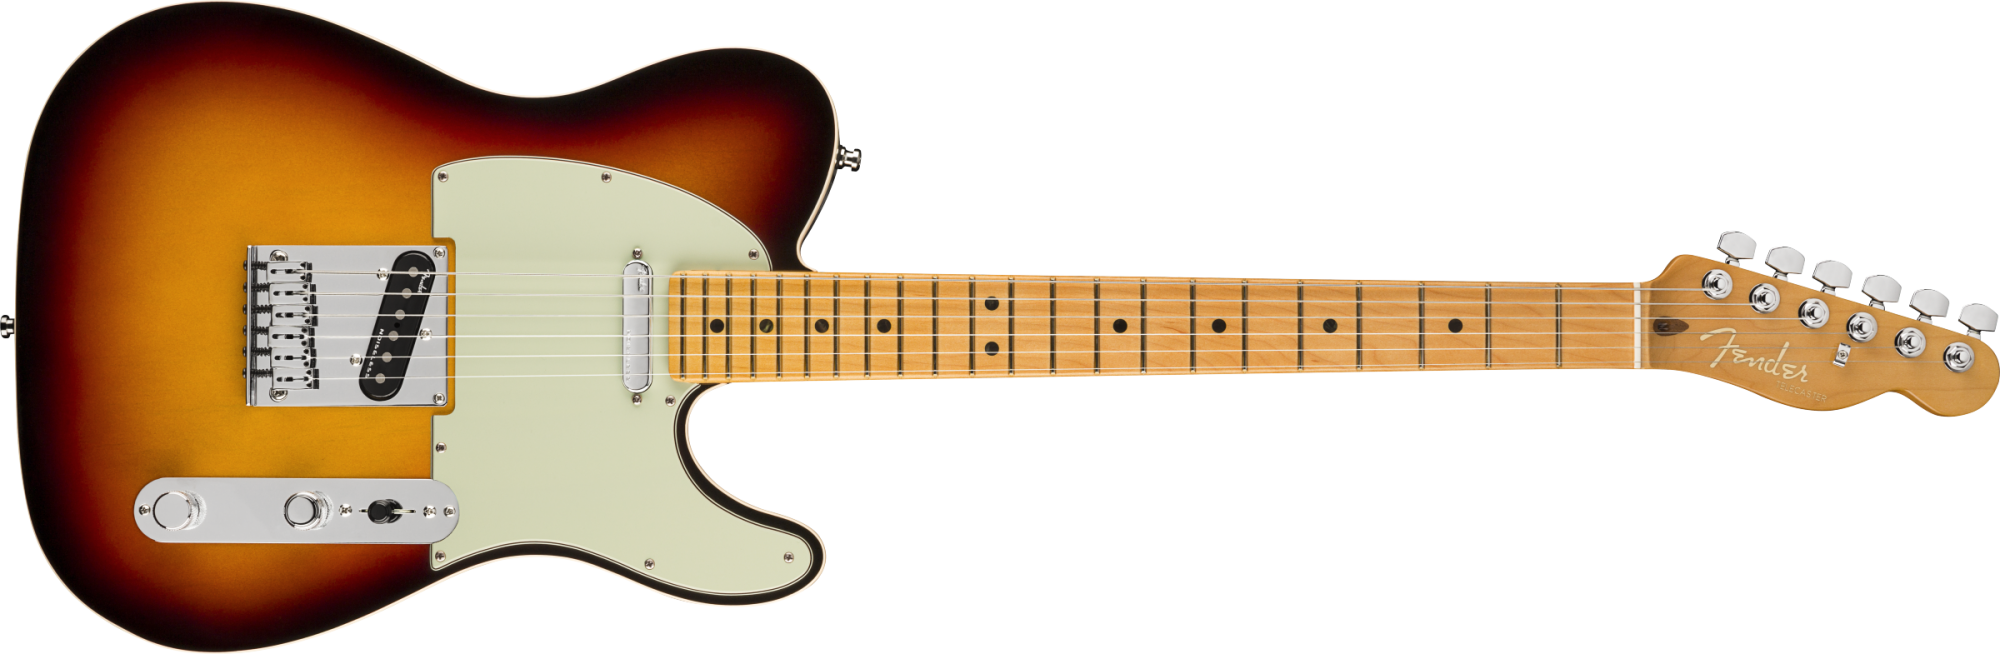 Fender American Ultra Telecaster, Maple Neck